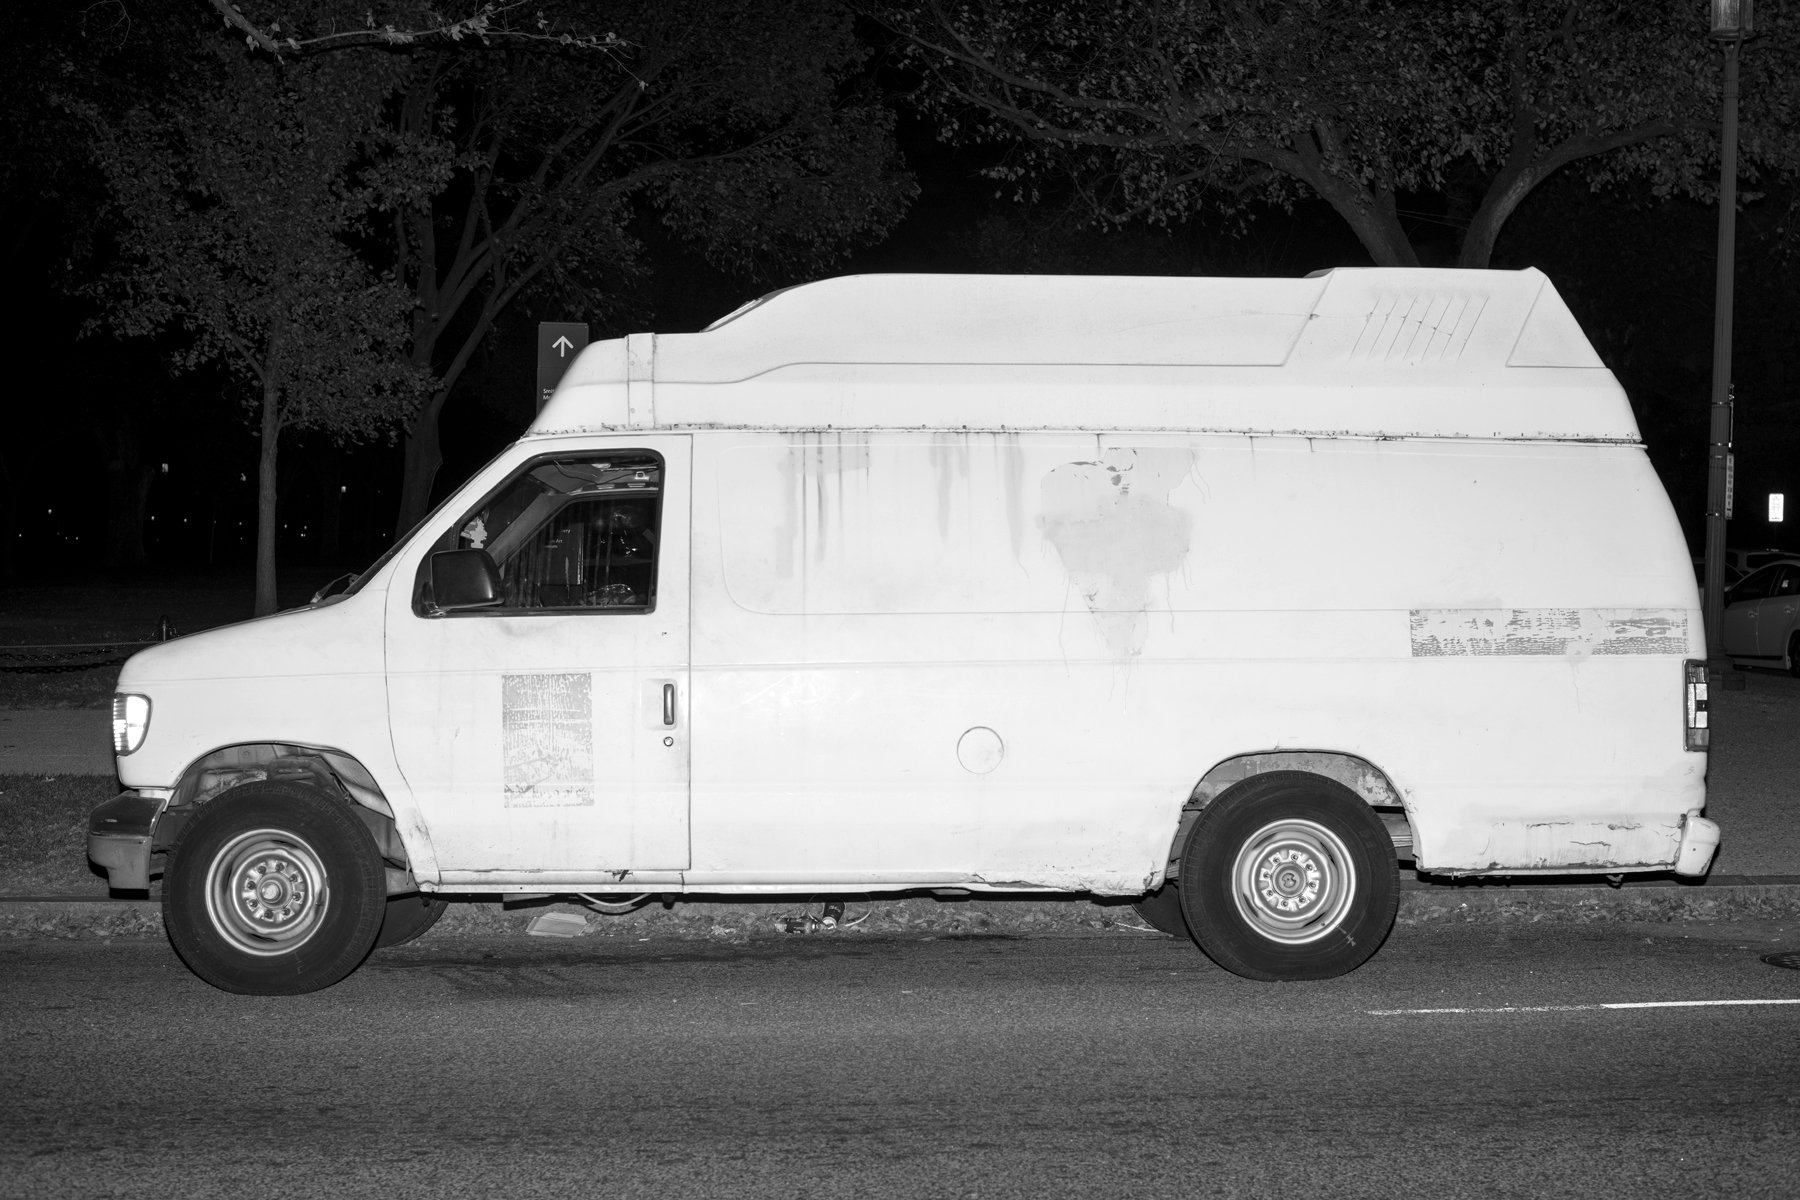 Mysterious black van photo